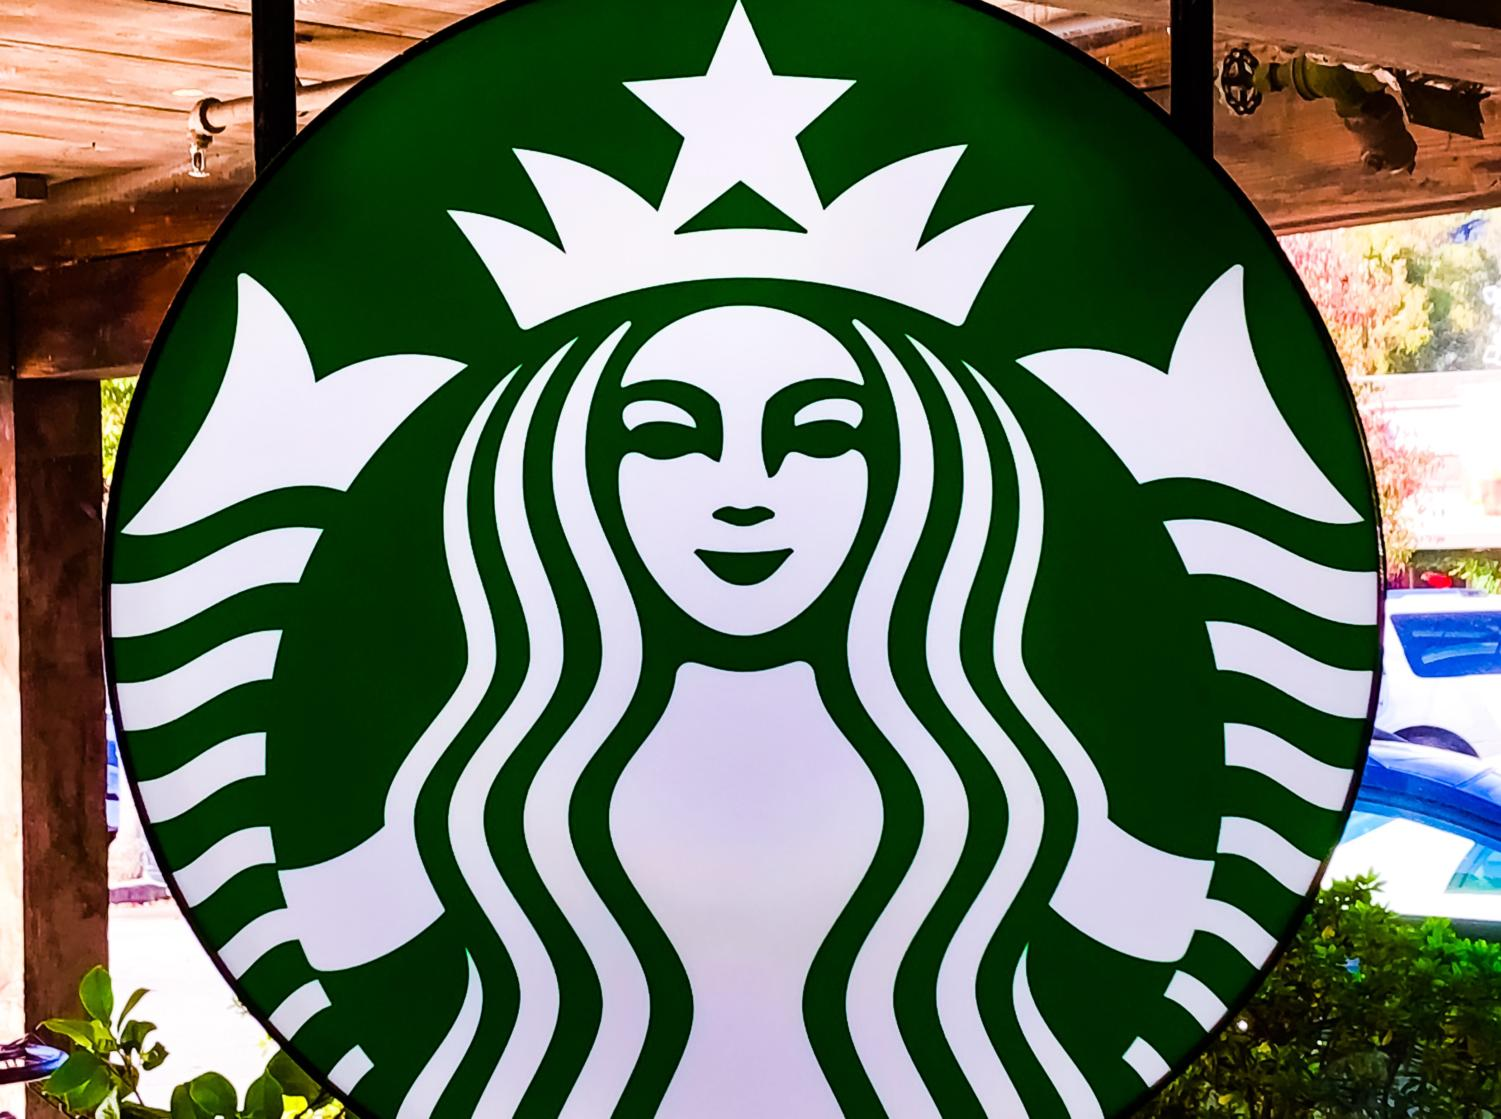 Alison Teteak, supervisor of the Starbucks in Carlmont Shopping Center, says  that there is a chance Starbucks might become cashless in the future.